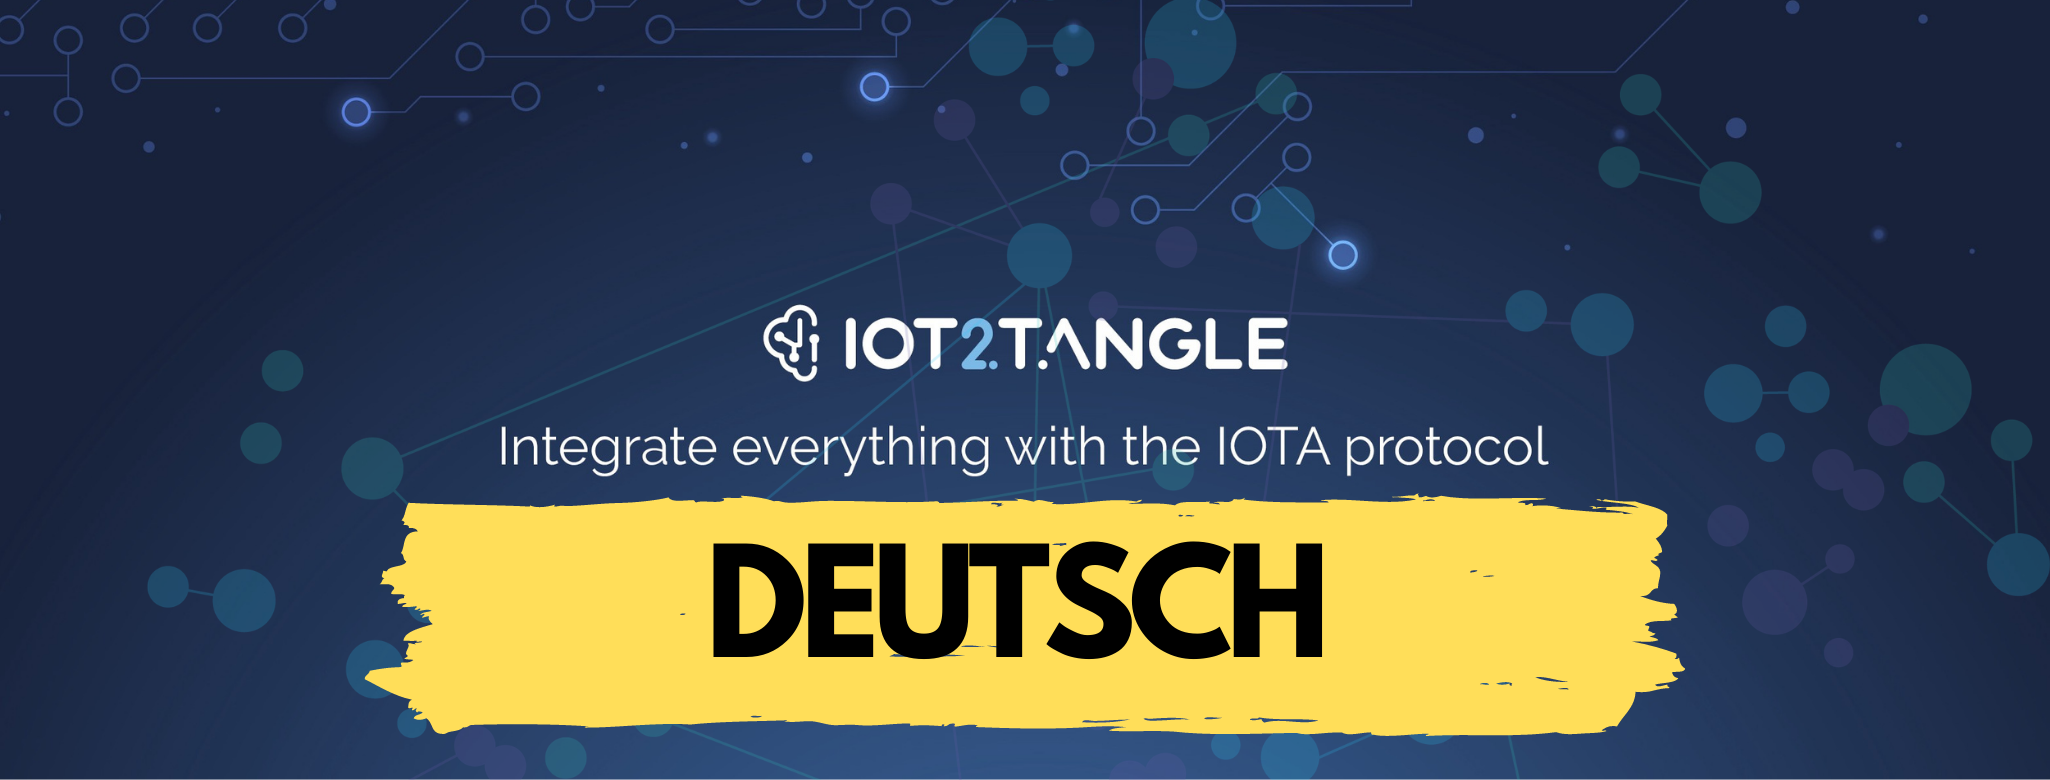 iota Iot2tangle deutsch